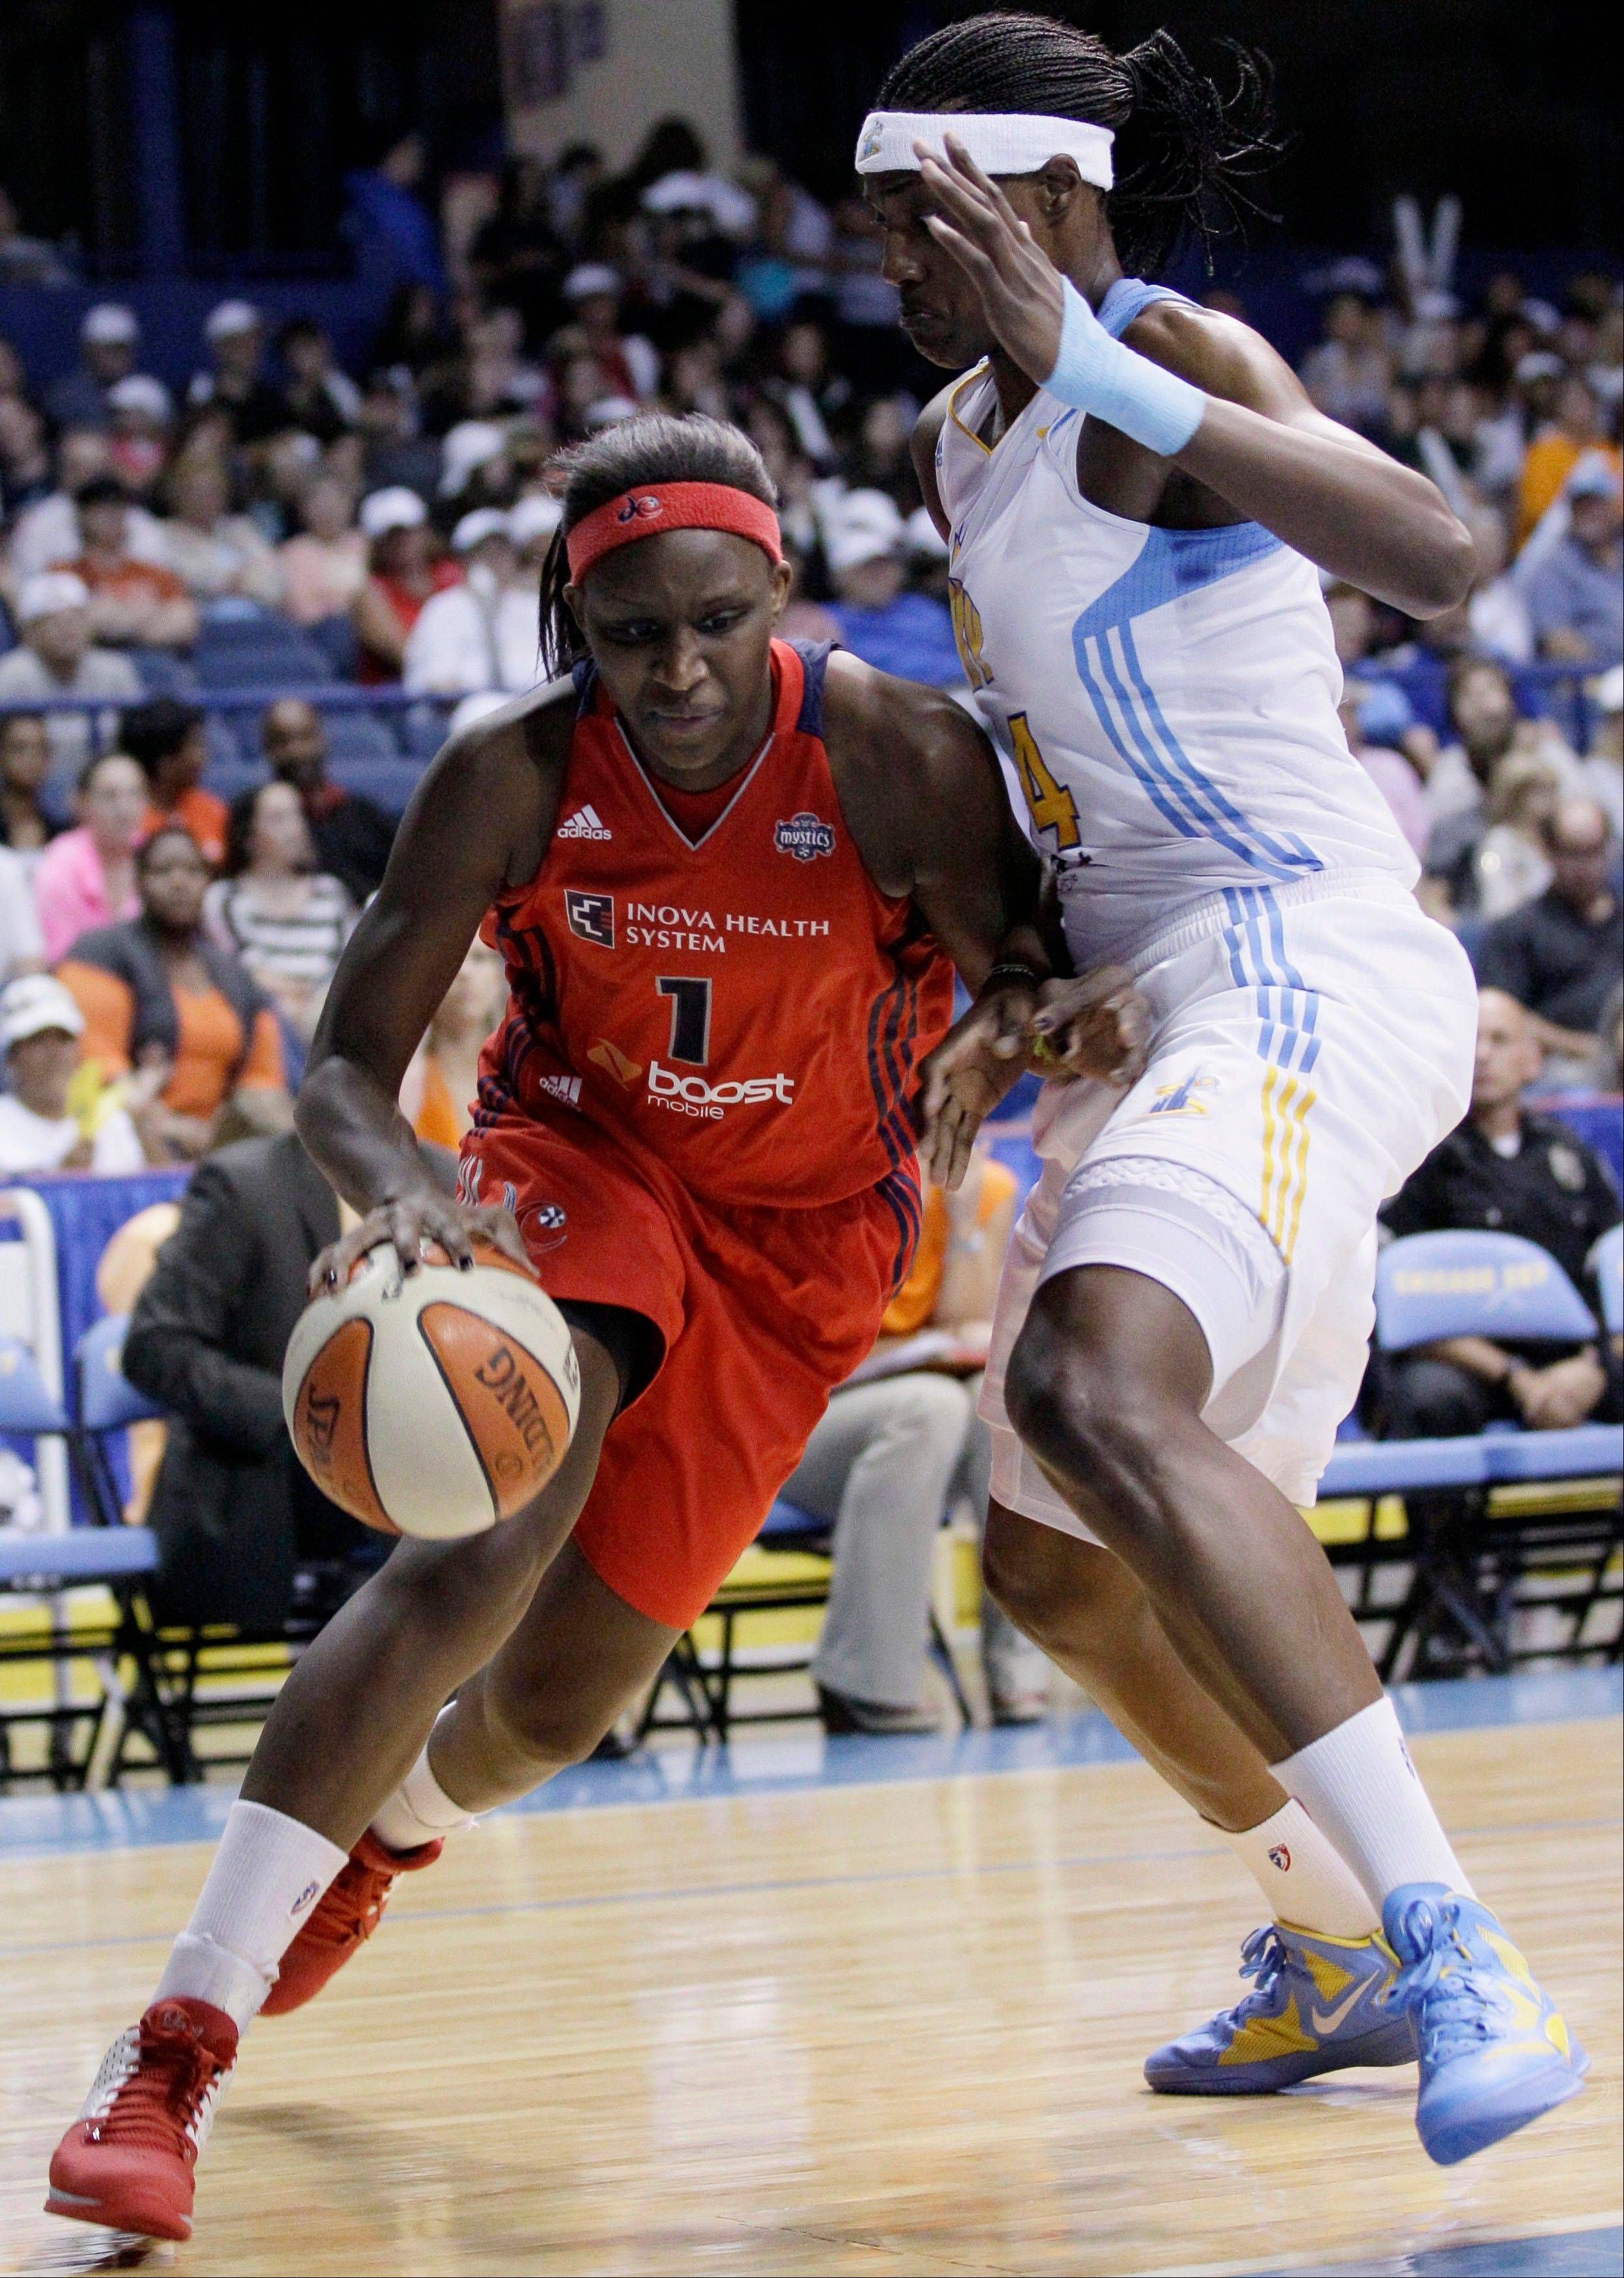 The Mystics' Crystal Langhorne drives to the basket Friday as the Sky's Sylvia Fowles plays defense.